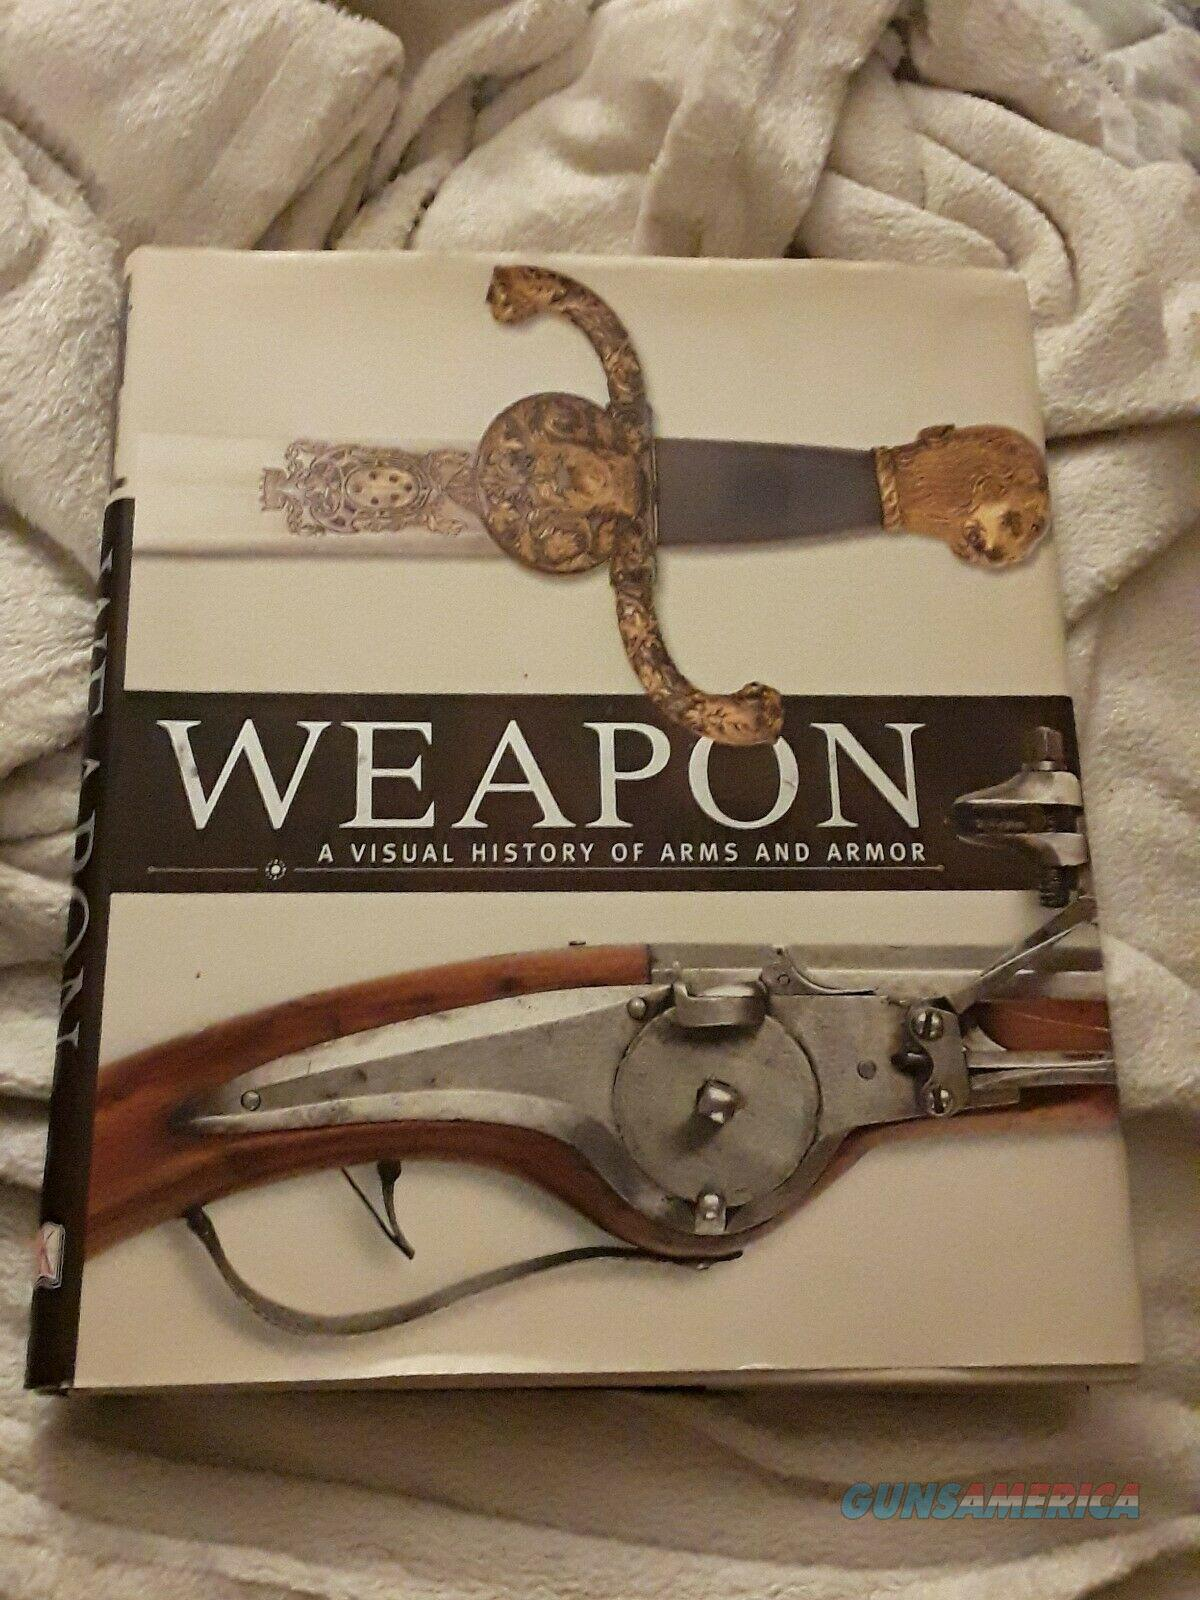 Weapon : A Visual History of Arms and Armor by Dorling Kindersley  Non-Guns > Books & Magazines